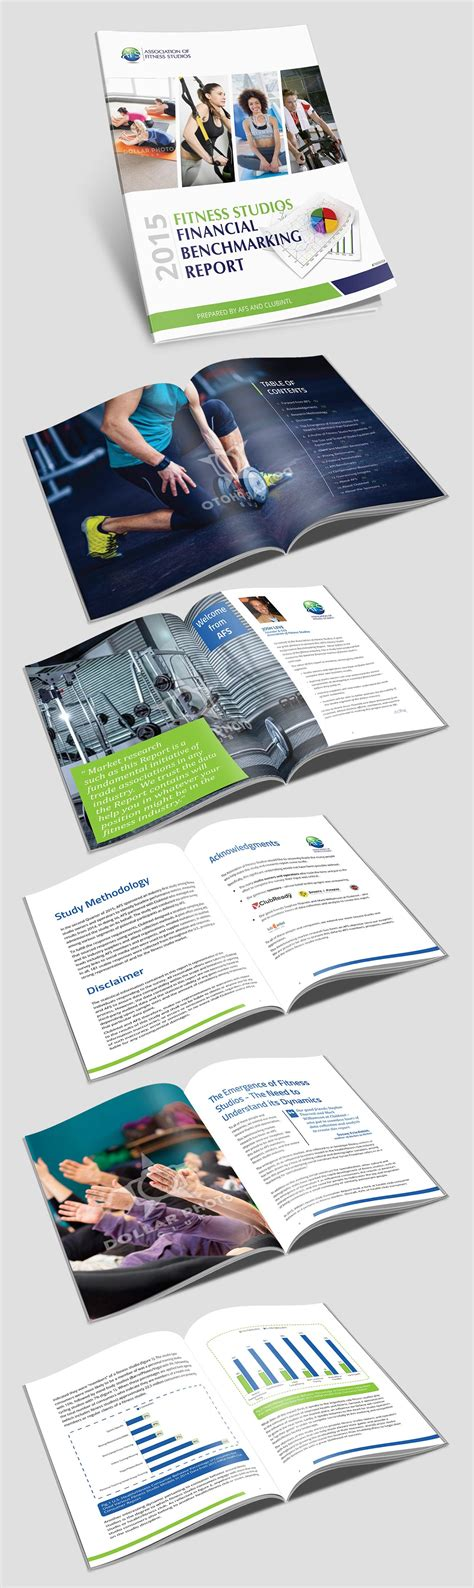 tweet published 2 5 2015 format e book available as epub mobi and pdf book ebook and business report interior layout design by